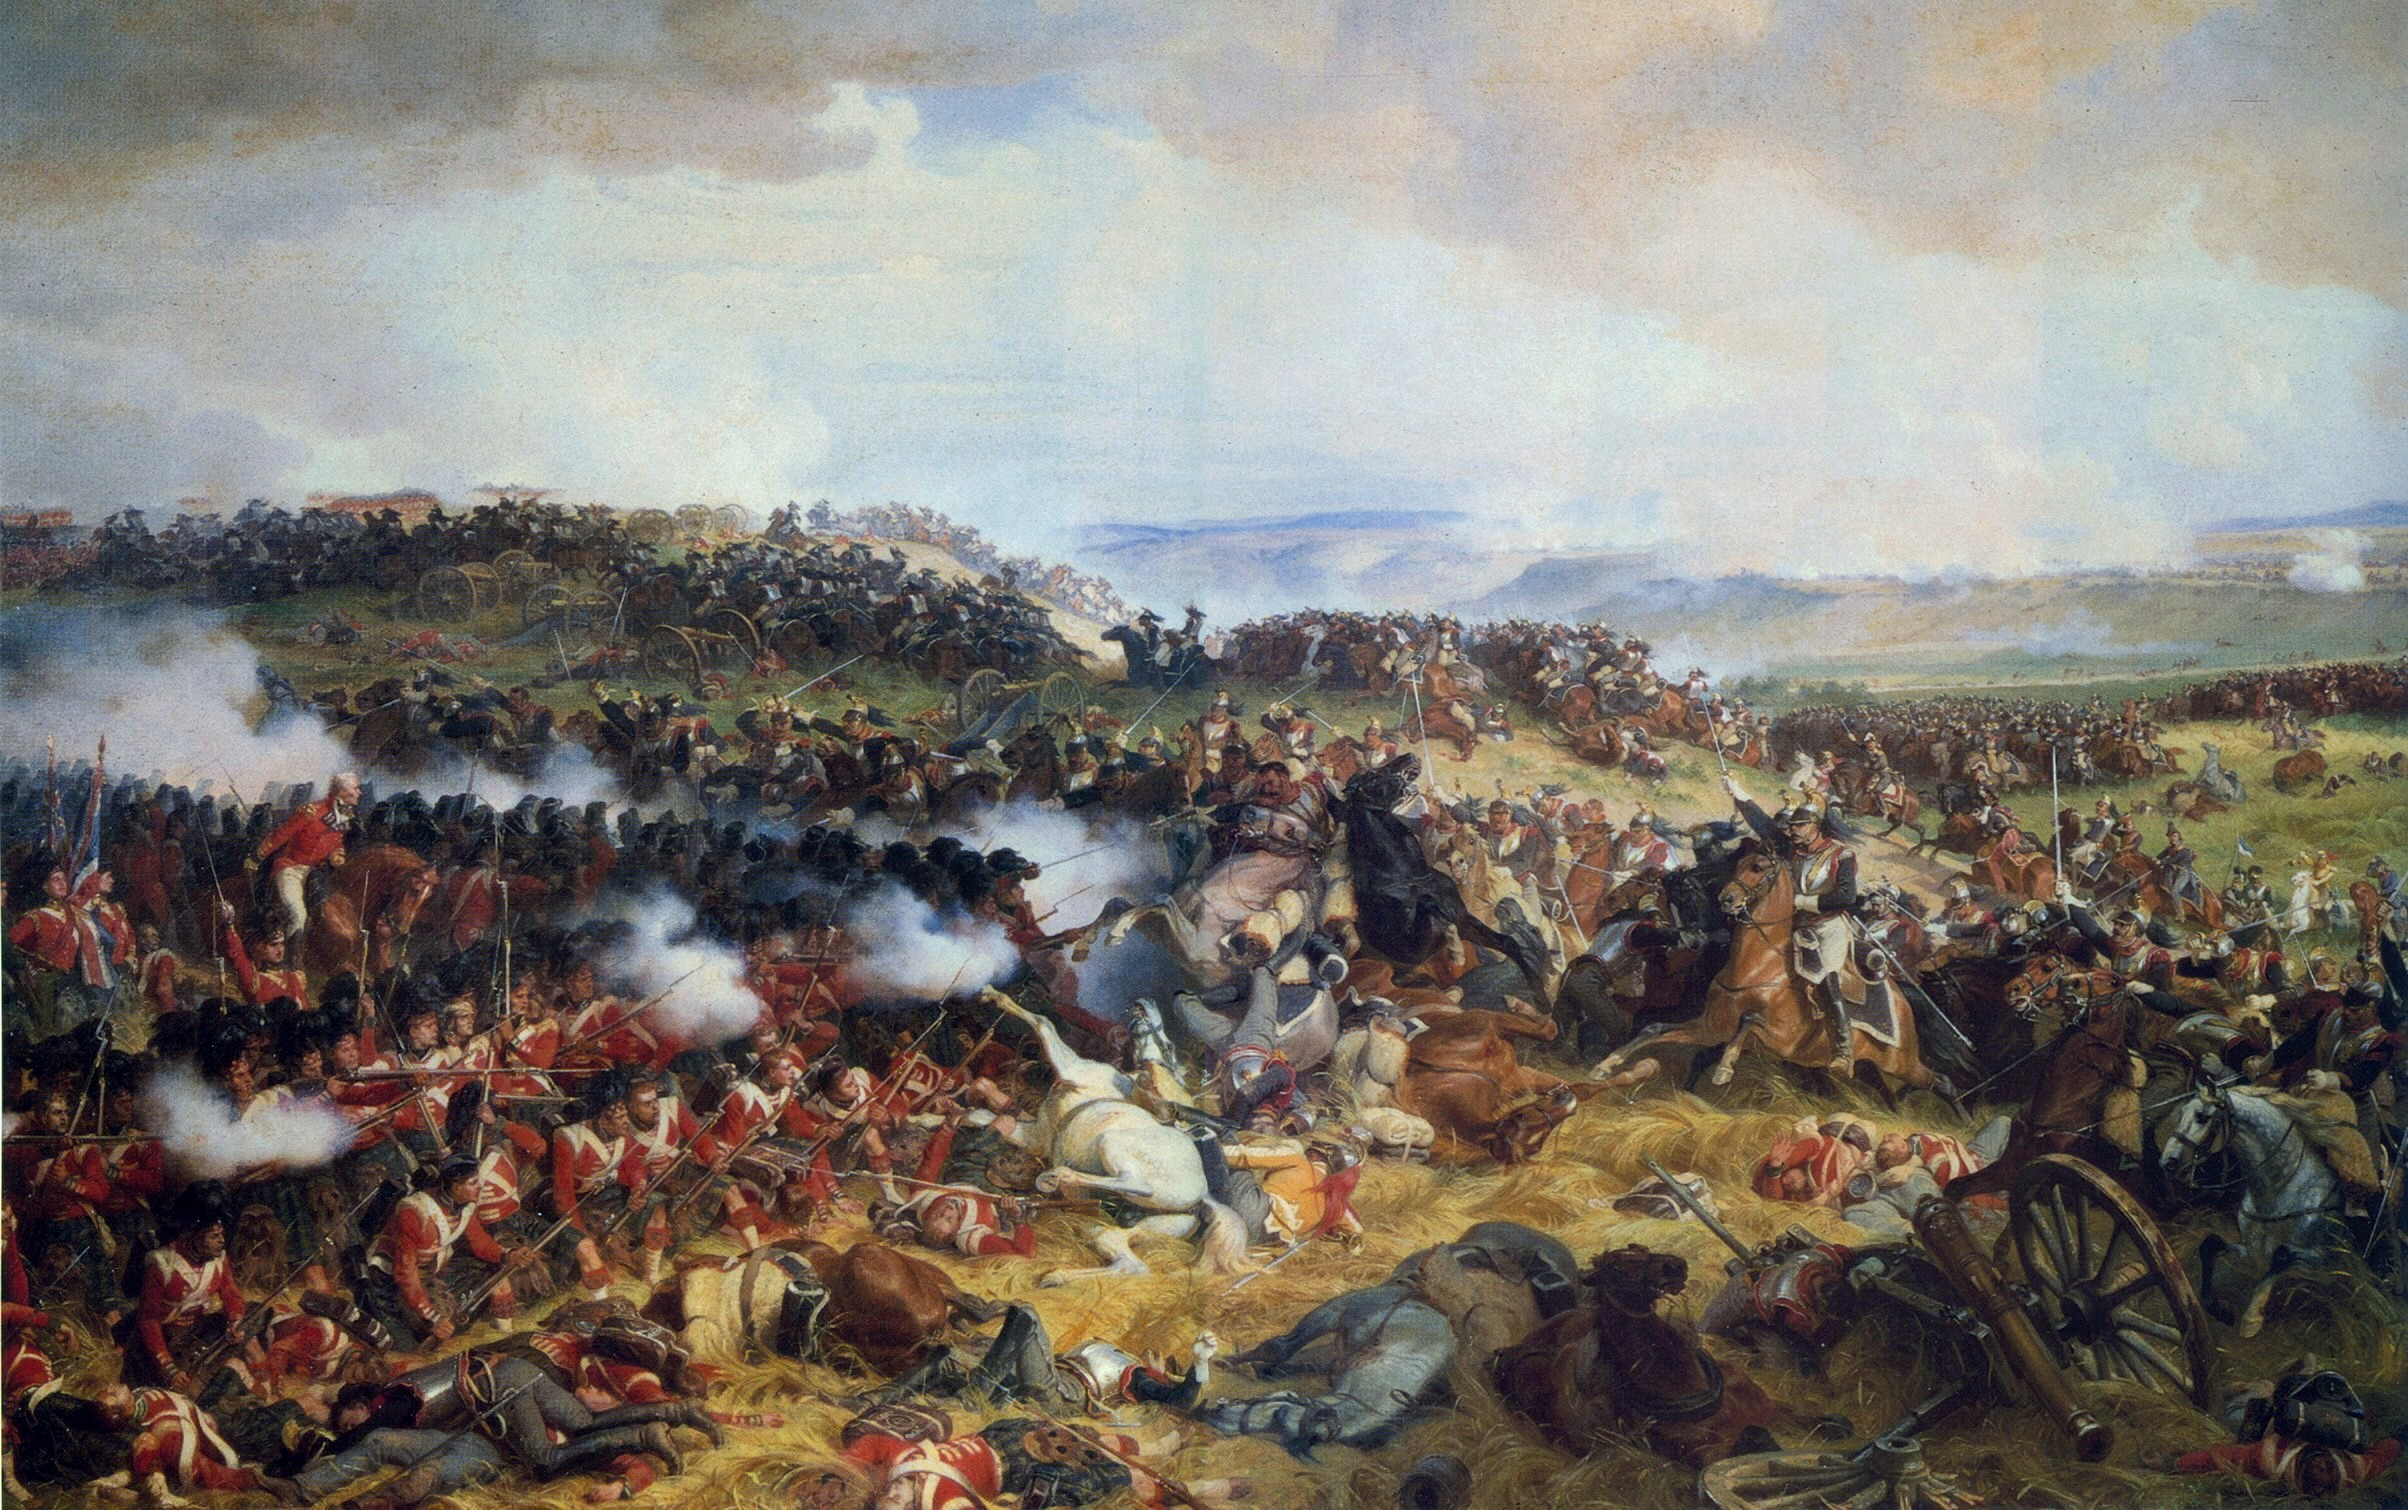 The Battle of Waterloo: The British Squares Receiving the Charge of the French Cuirassiers by Henri Félix Emmanuel Philippoteaux, 1874.